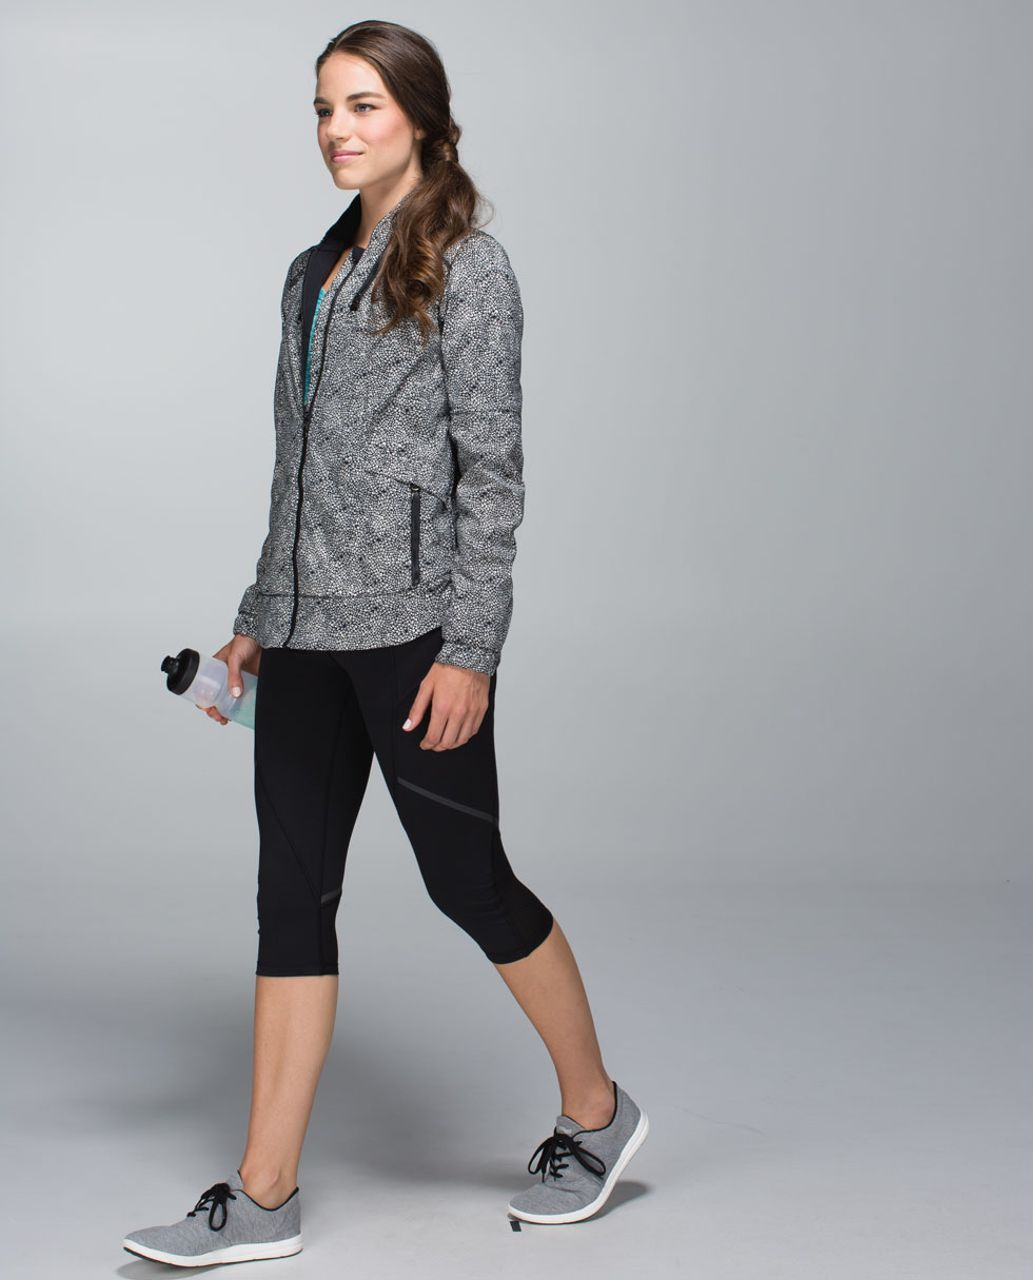 Lululemon Spring Forward Jacket - Plush Petal Black Ghost / Black